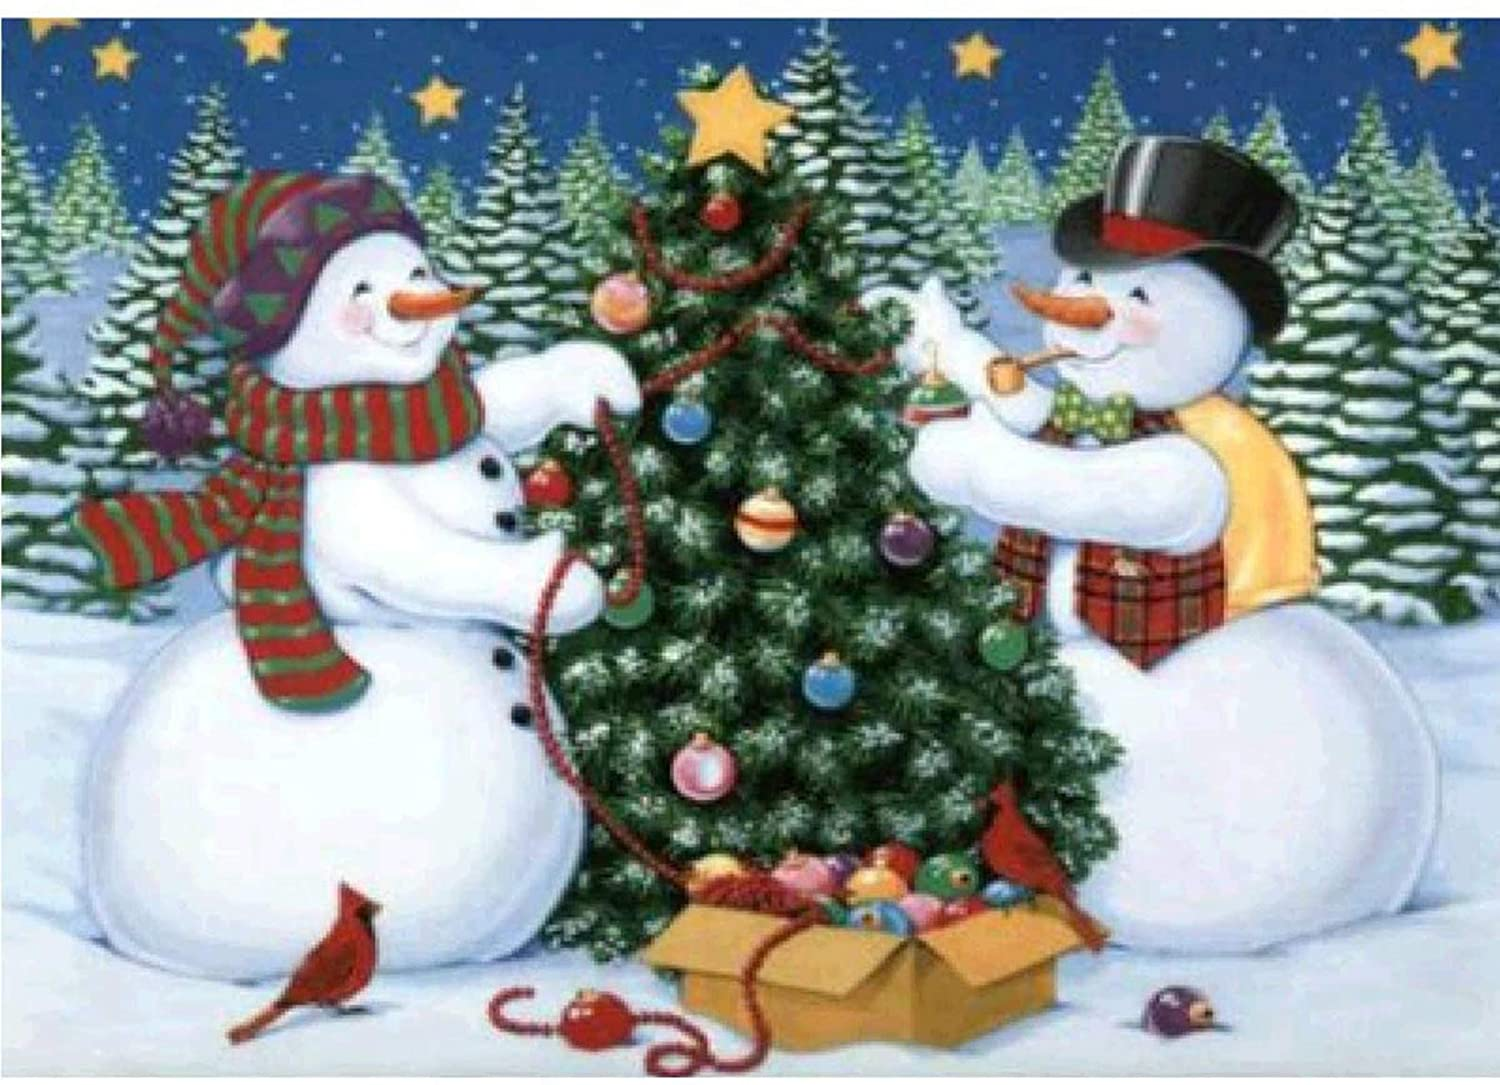 Full Drill Diamond Painting by Number Kits, BENBO 5D DIY Snowman Christmas Tree Round Crystal Rhinestone Embroidery Cross Stitch Arts Craft for Home Wall Decor (11.8In X 15.8In)